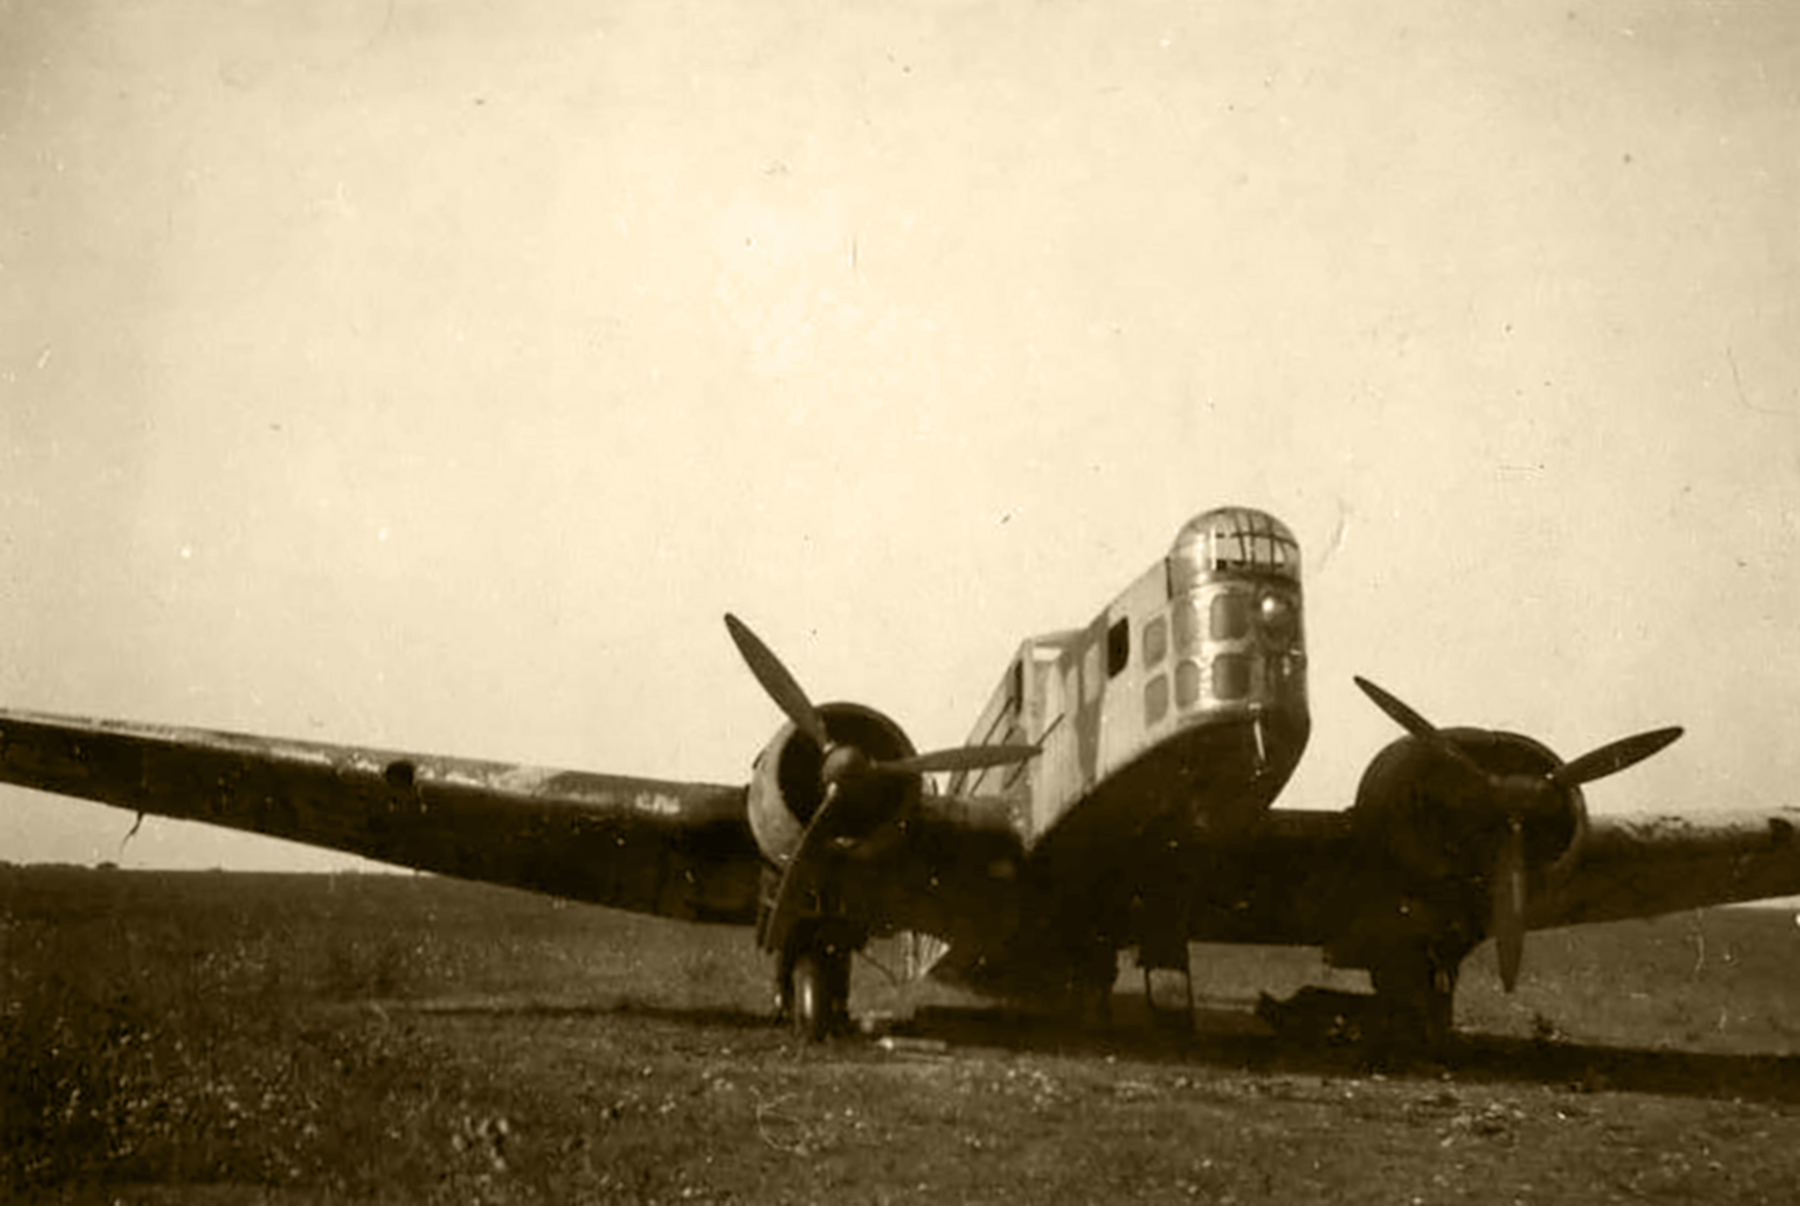 French Airforce Bloch MB 210 sits abandoned after the fall of France June 1940 ebay 01